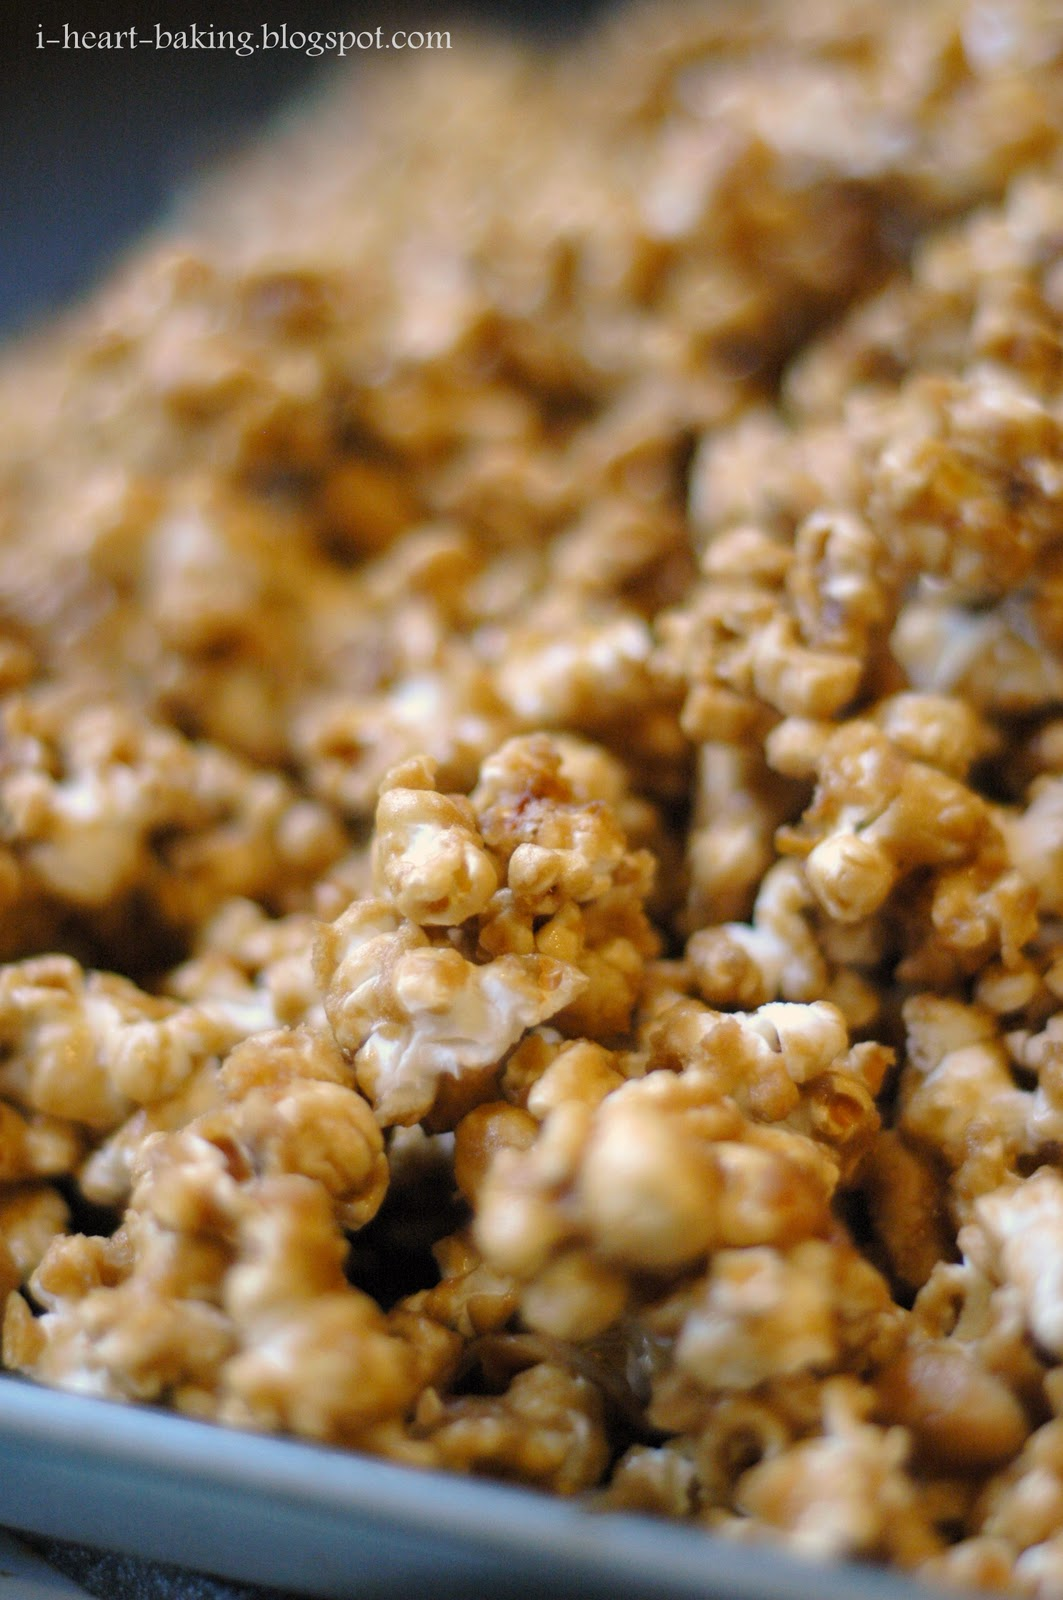 i heart baking!: homemade caramel popcorn